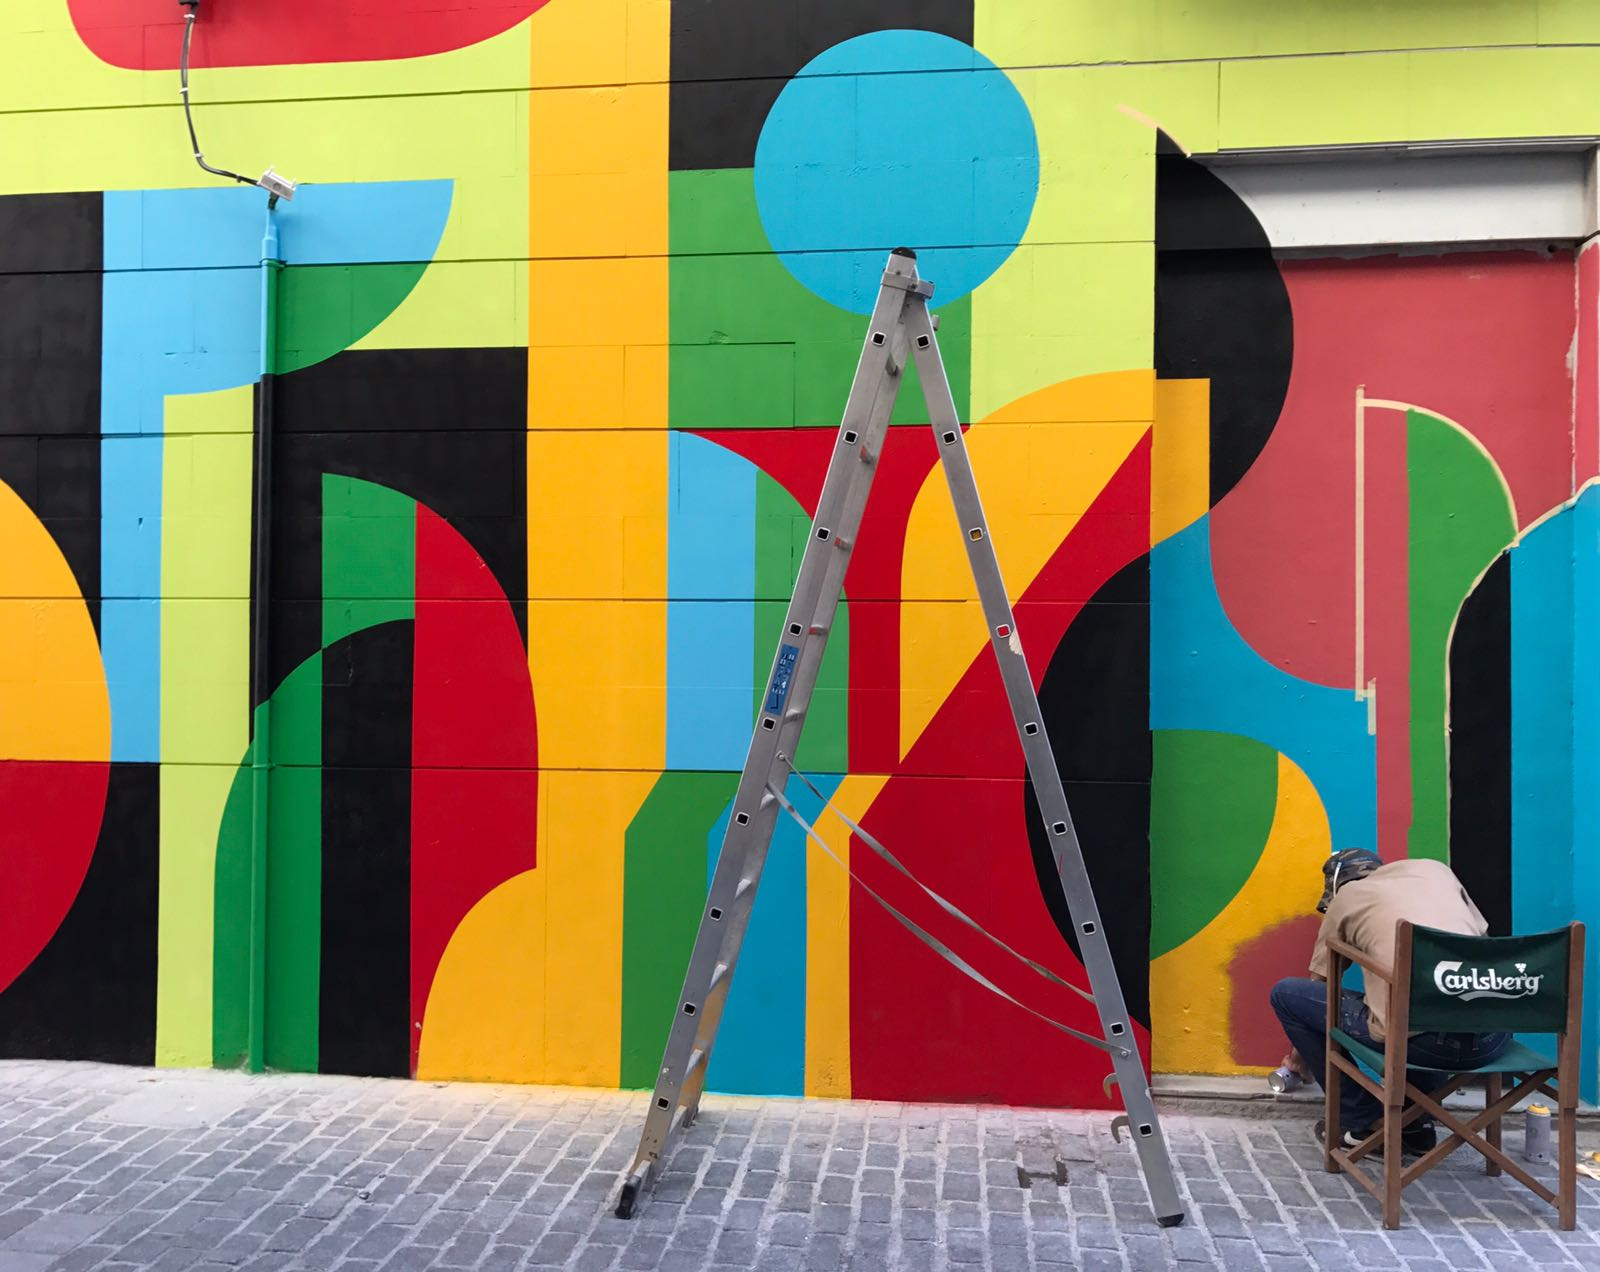 Geometric mural still being painted with the artist at work